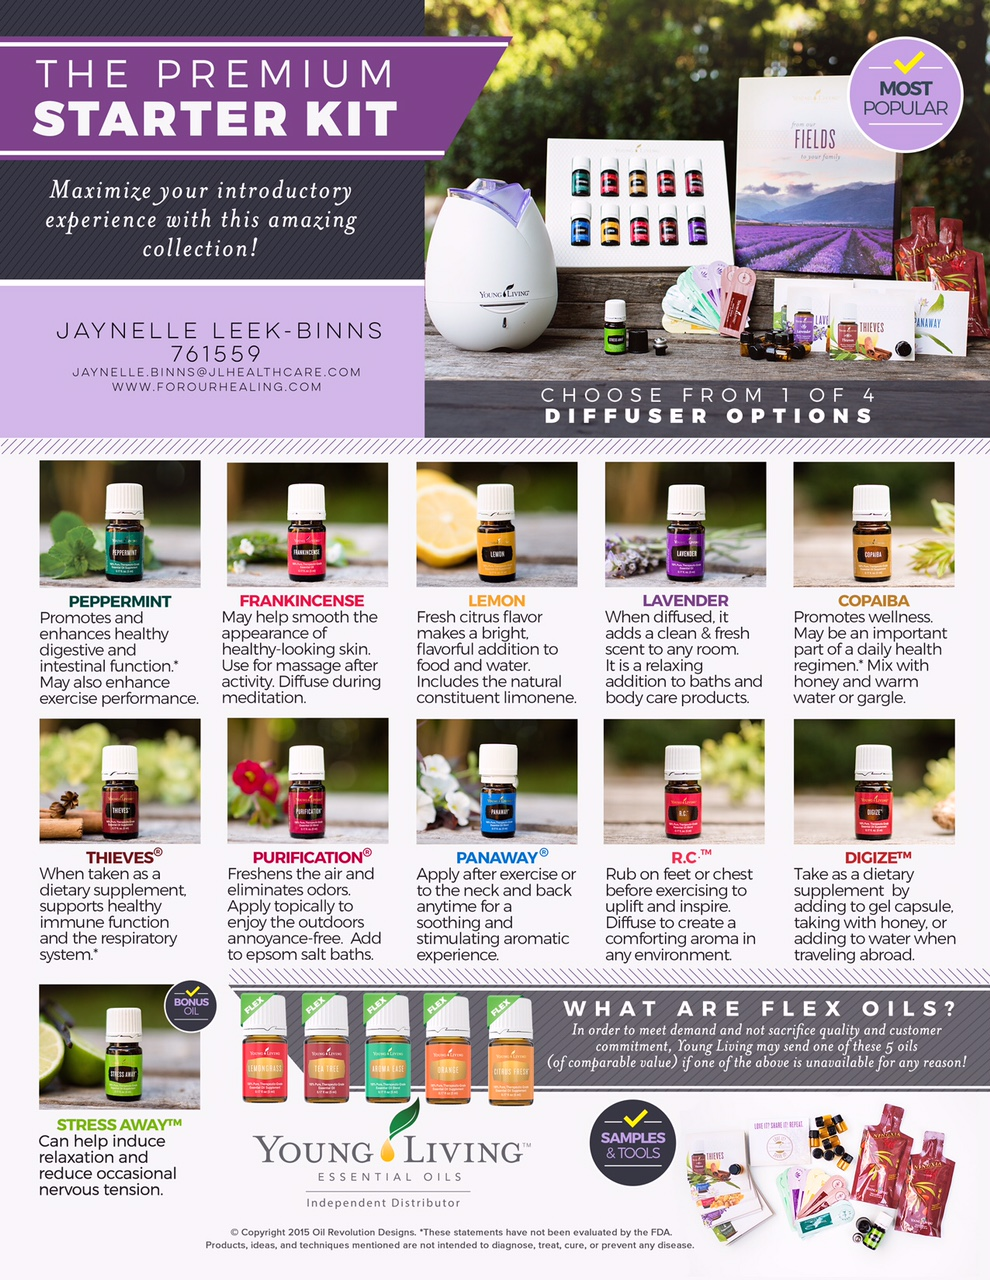 10 oils + 1 bonus oil = The BEST way to start your Young Living journey.